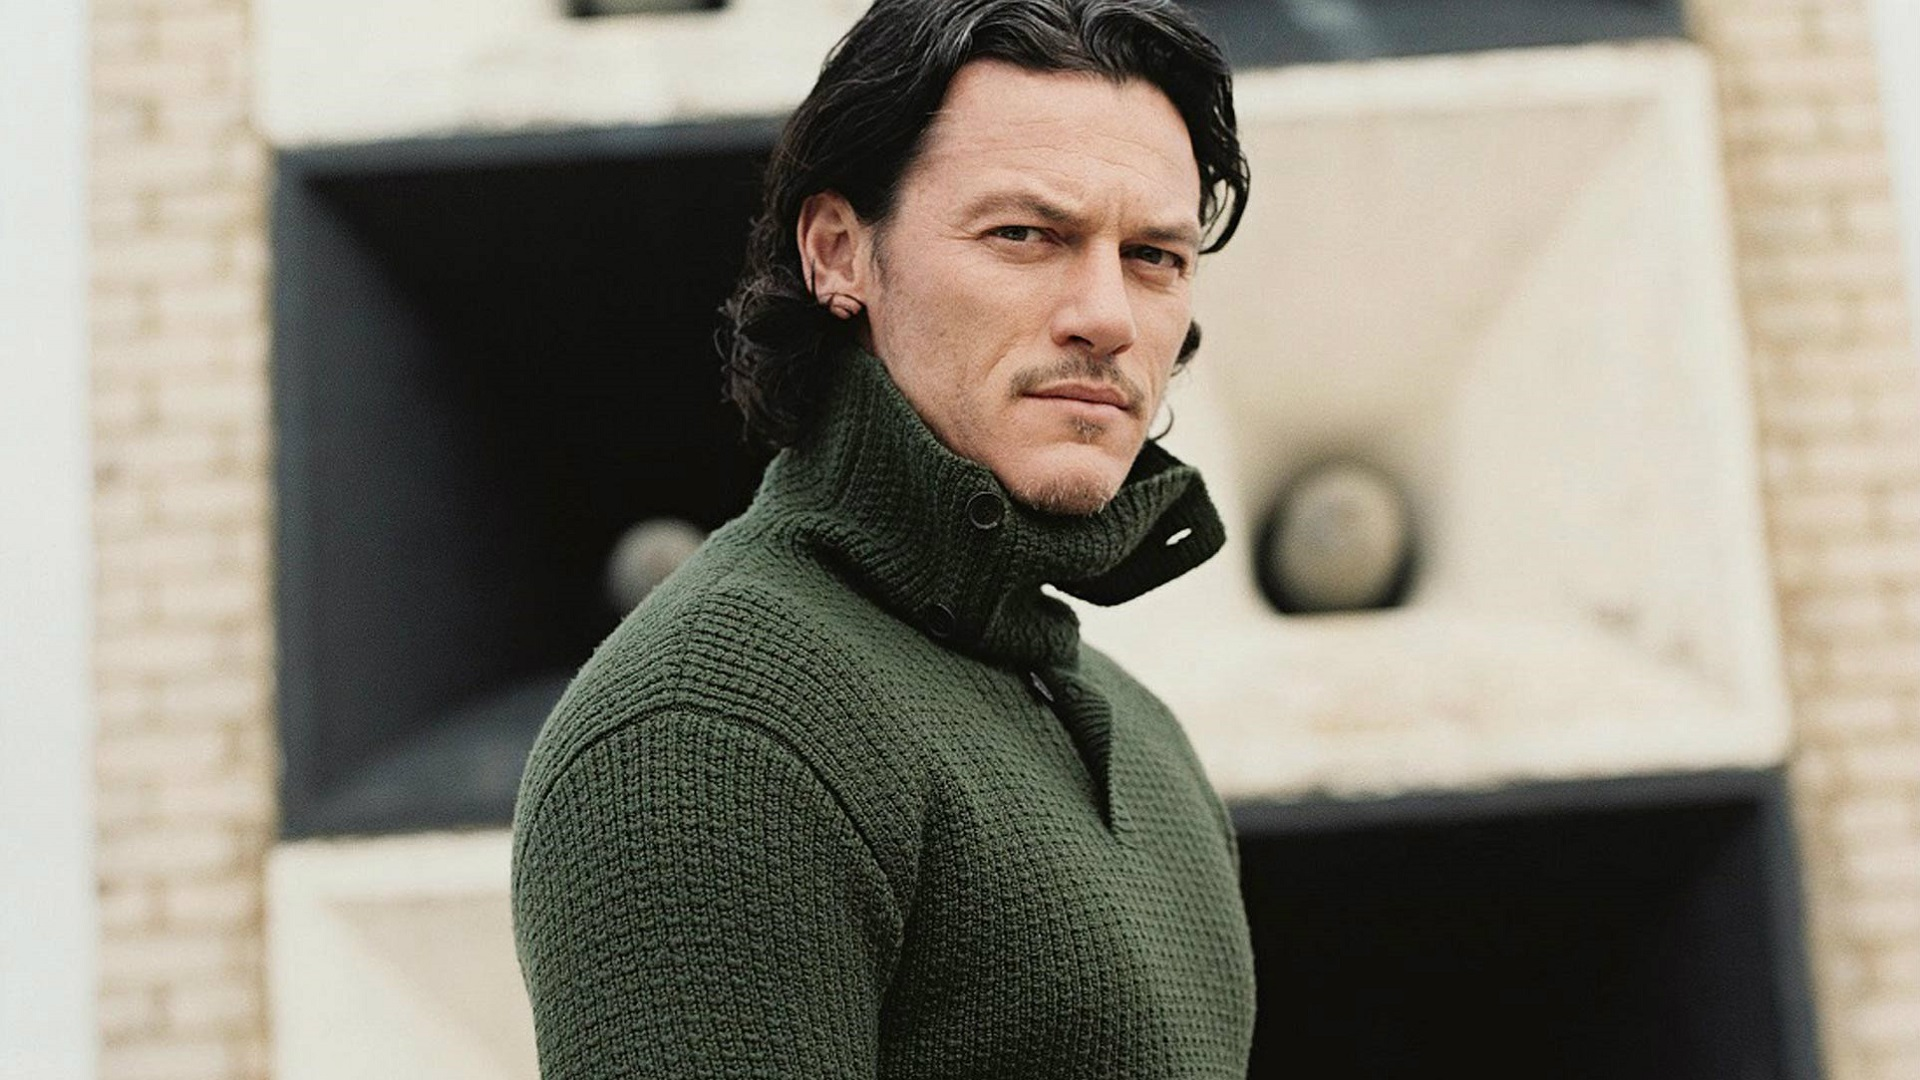 Luke Evans Wallpapers Full HD Pictures 1920x1080